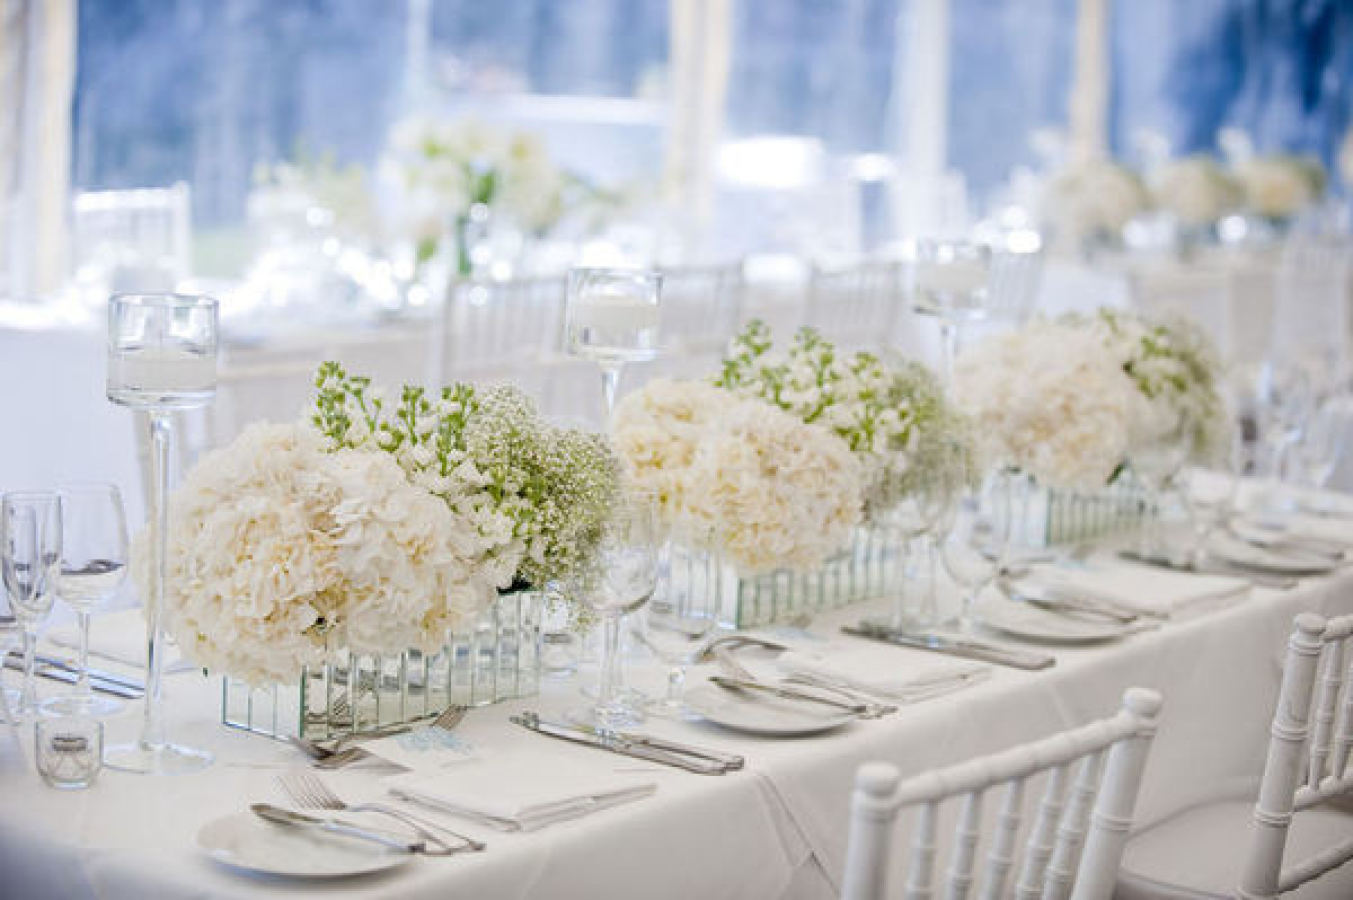 12 Stunning Floral Wedding Centerpieces With Great Themes ...